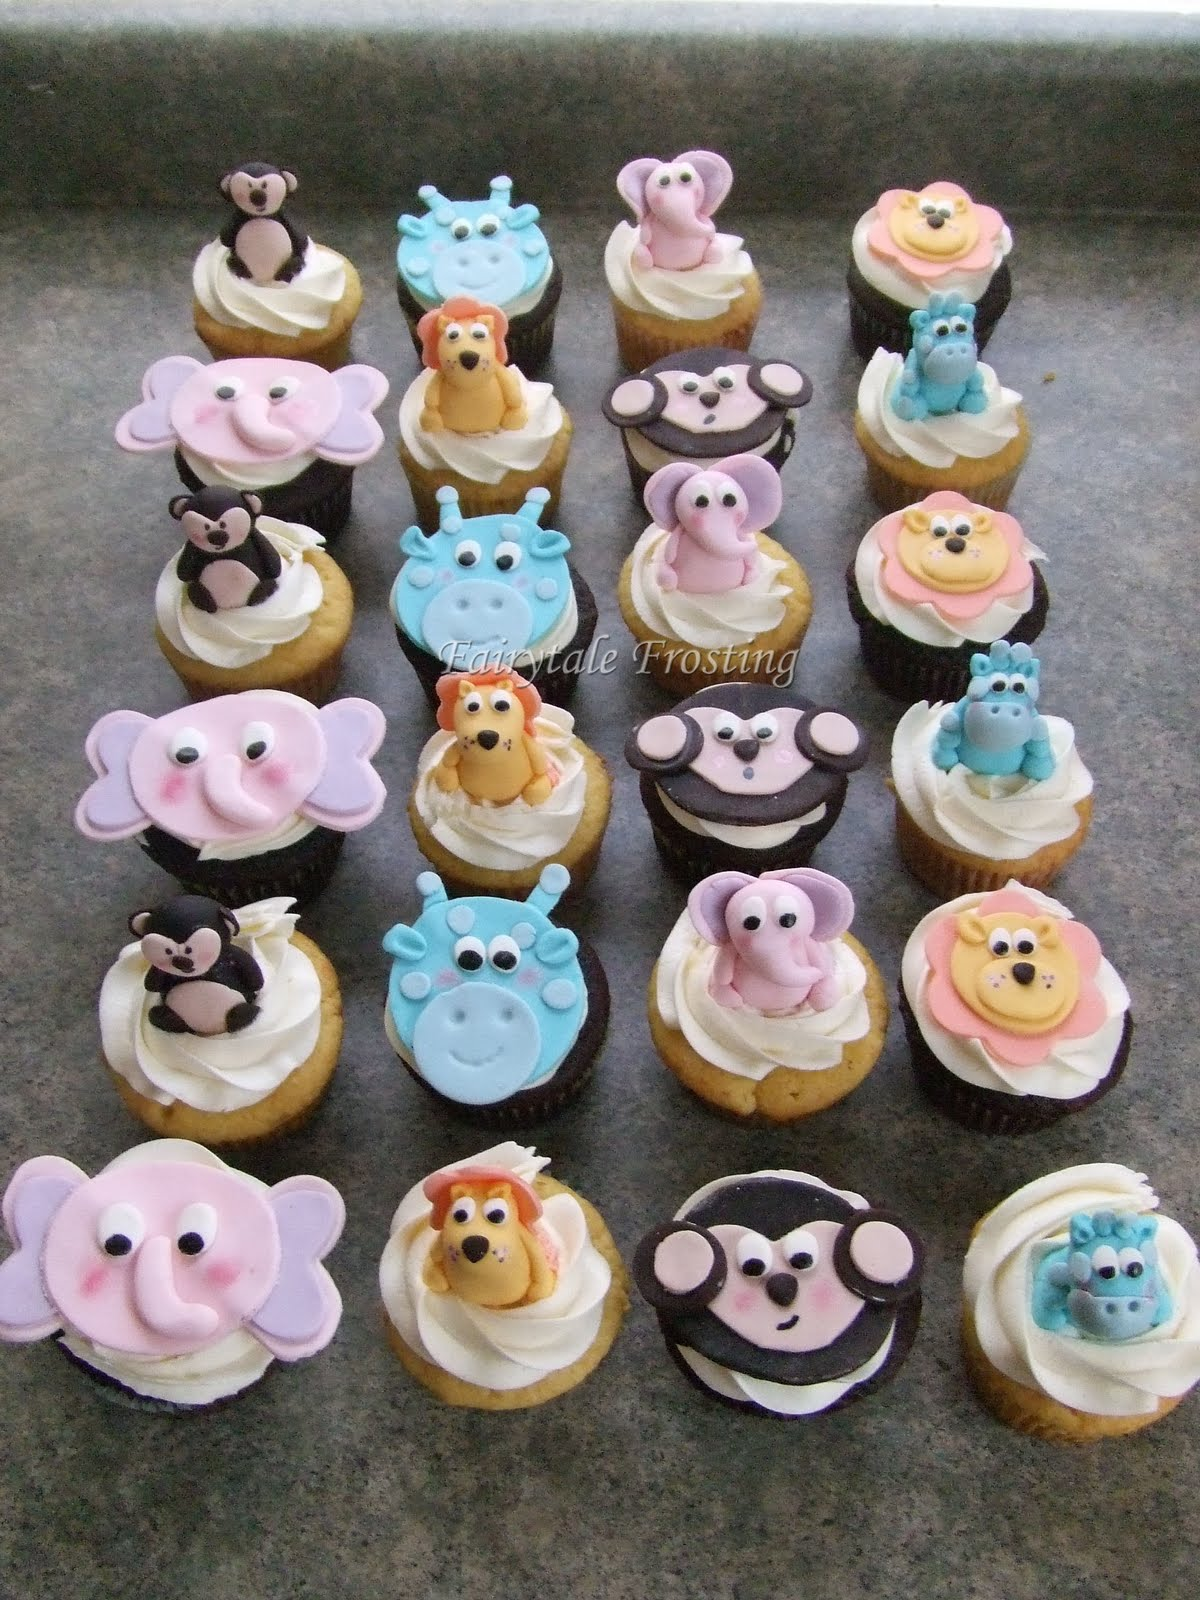 Baby Shower Ideas Cupcake Themed : Fairytale Frosting: Pastel Jungle Baby Shower Cupcakes